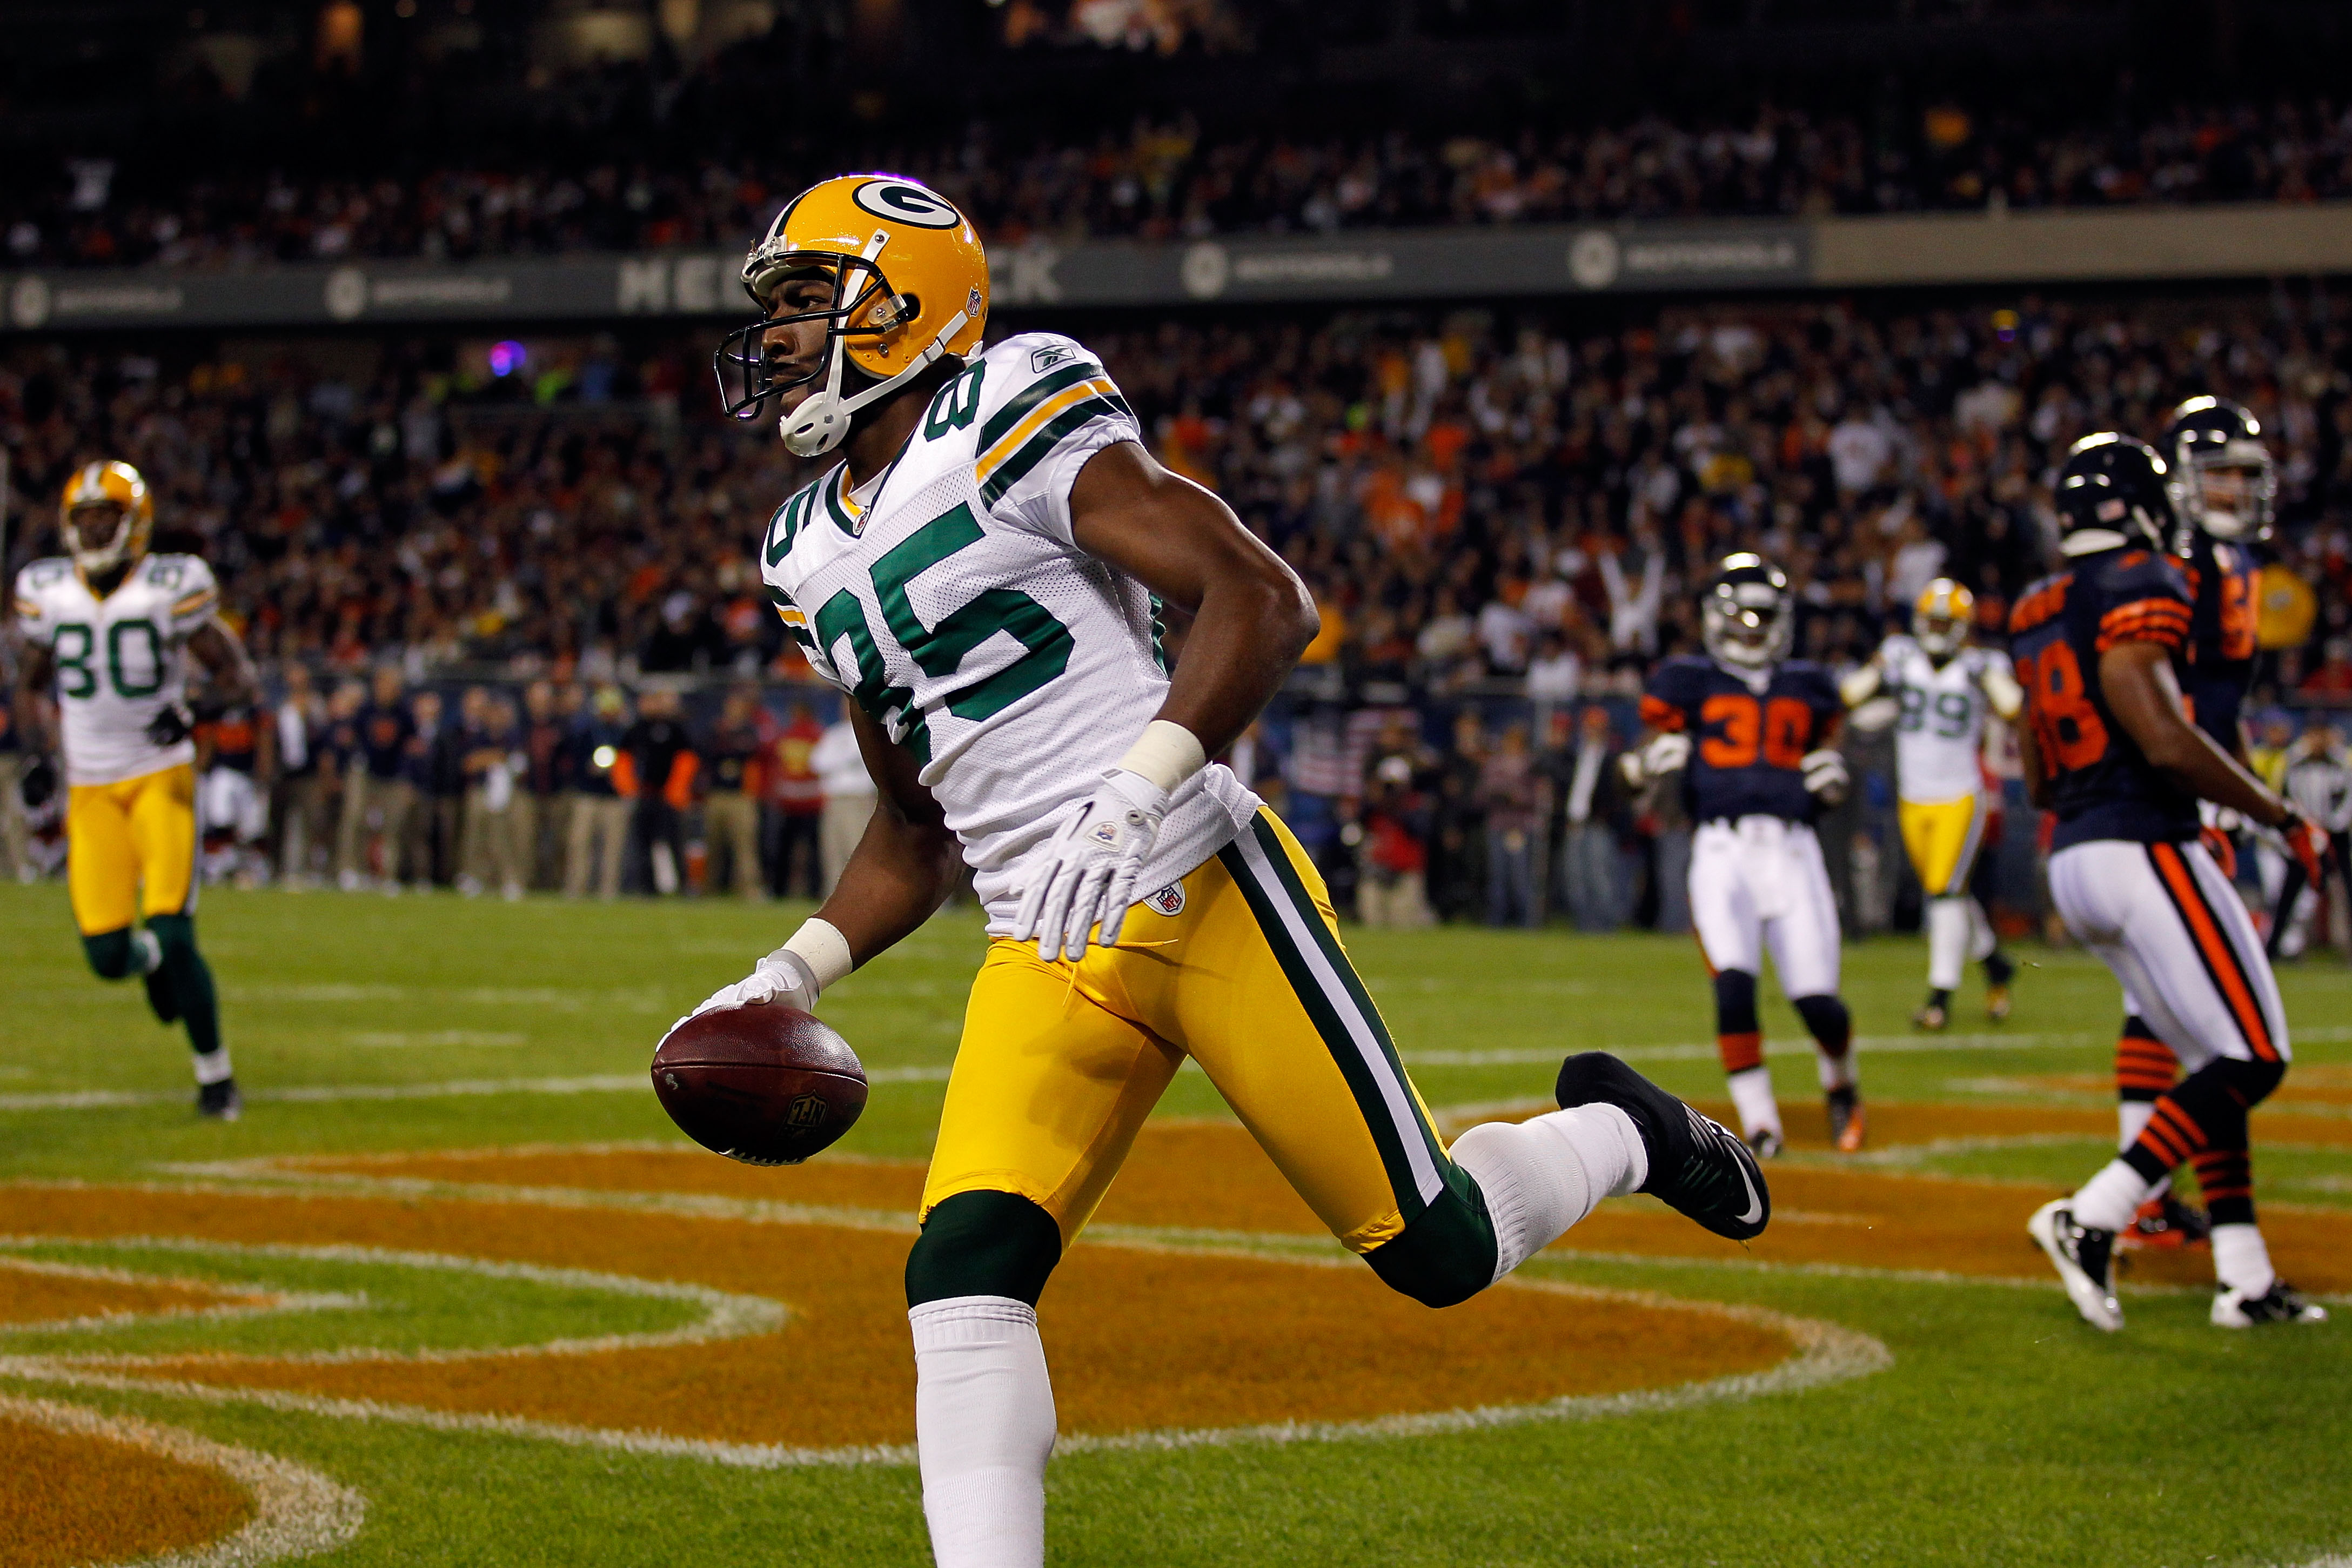 CHICAGO - SEPTEMBER 27:  Greg Jennings #85 of the Green Bay Packers reacts after he scored a 7-yard touchdown reception in the first quarter against the Chicago Bears at Soldier Field on September 27, 2010 in Chicago, Illinois.  (Photo by Jonathan Daniel/